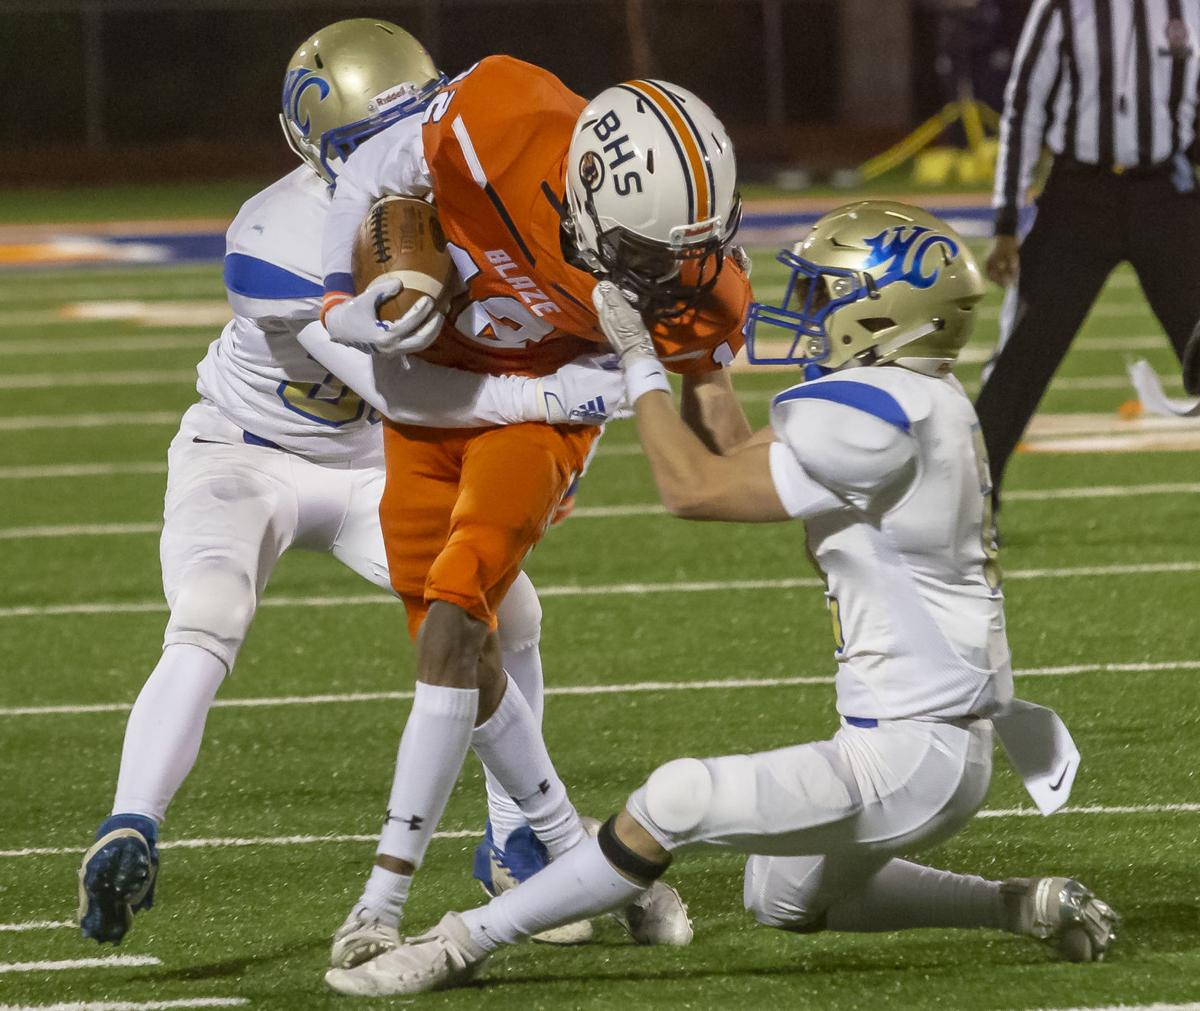 Blackman advances with 24-0 win over Wilson Central